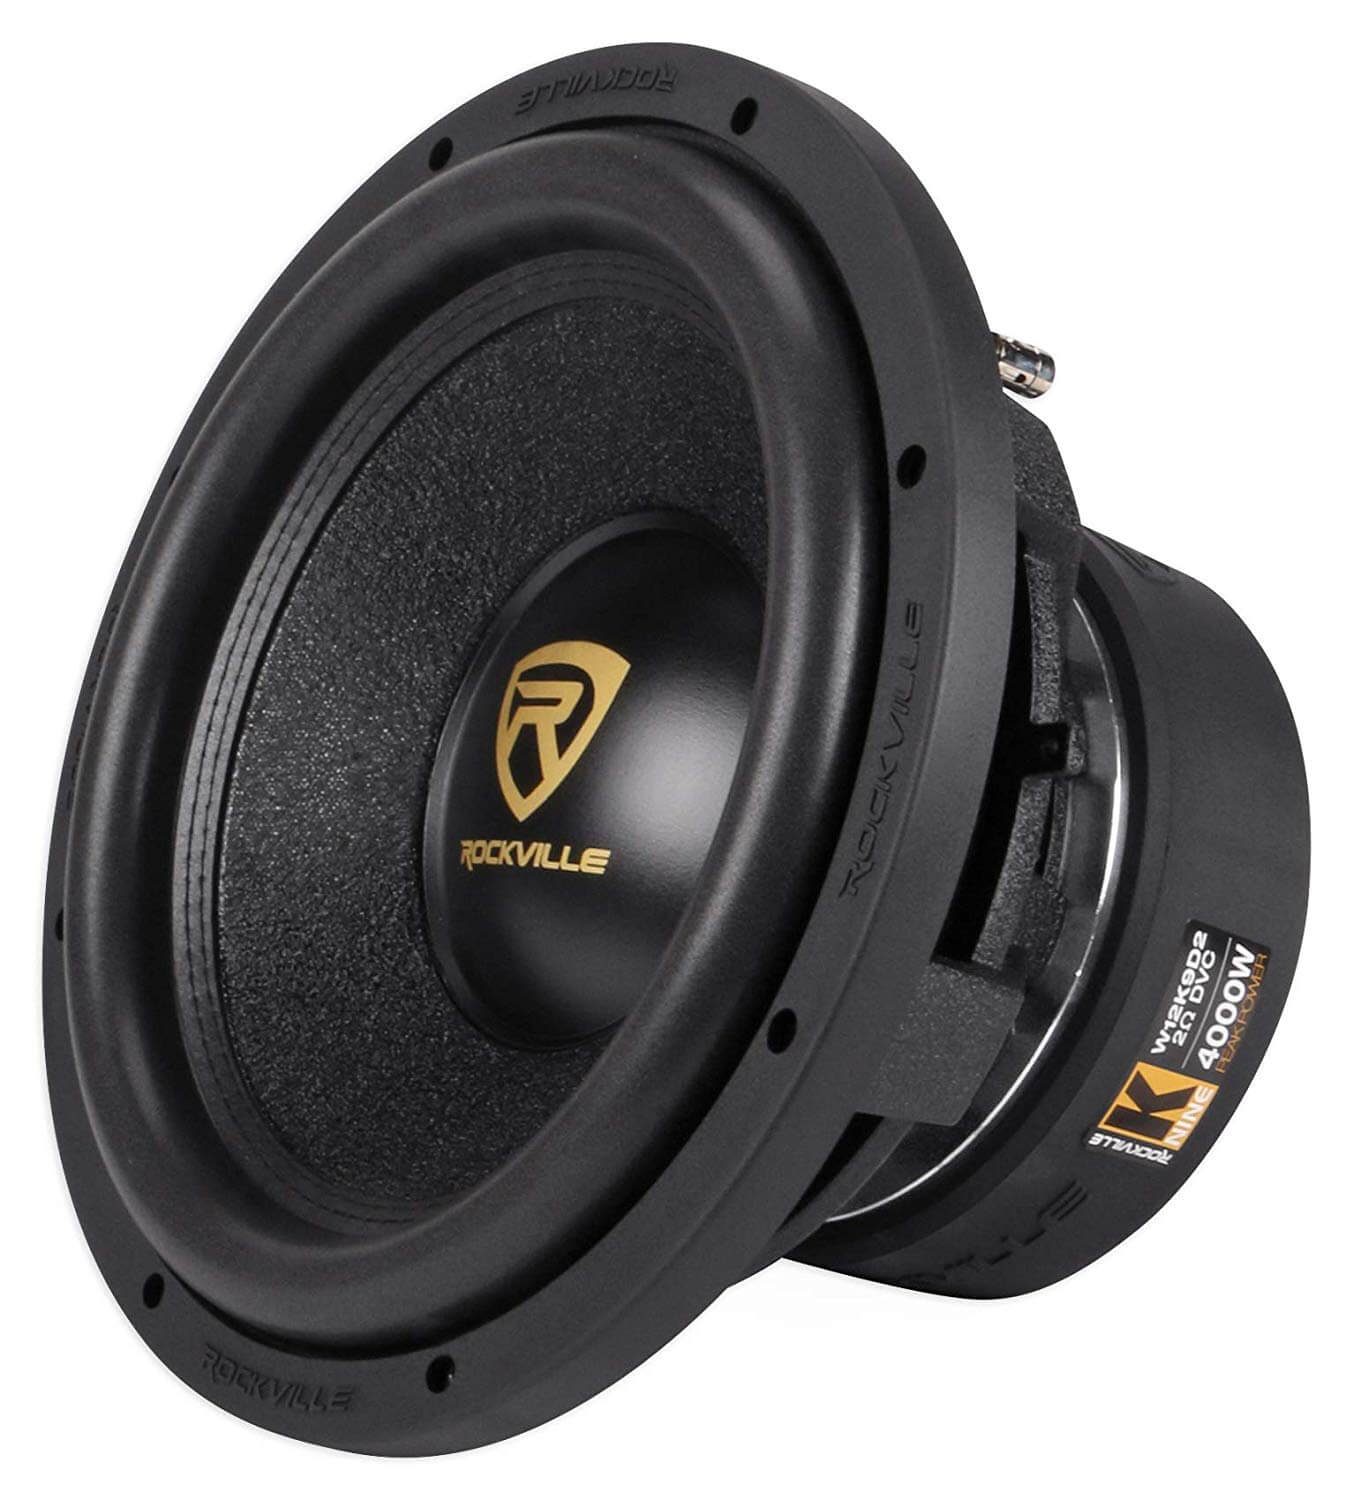 Rockville W12K9D2 12 inch Competition Audio Subwoofer